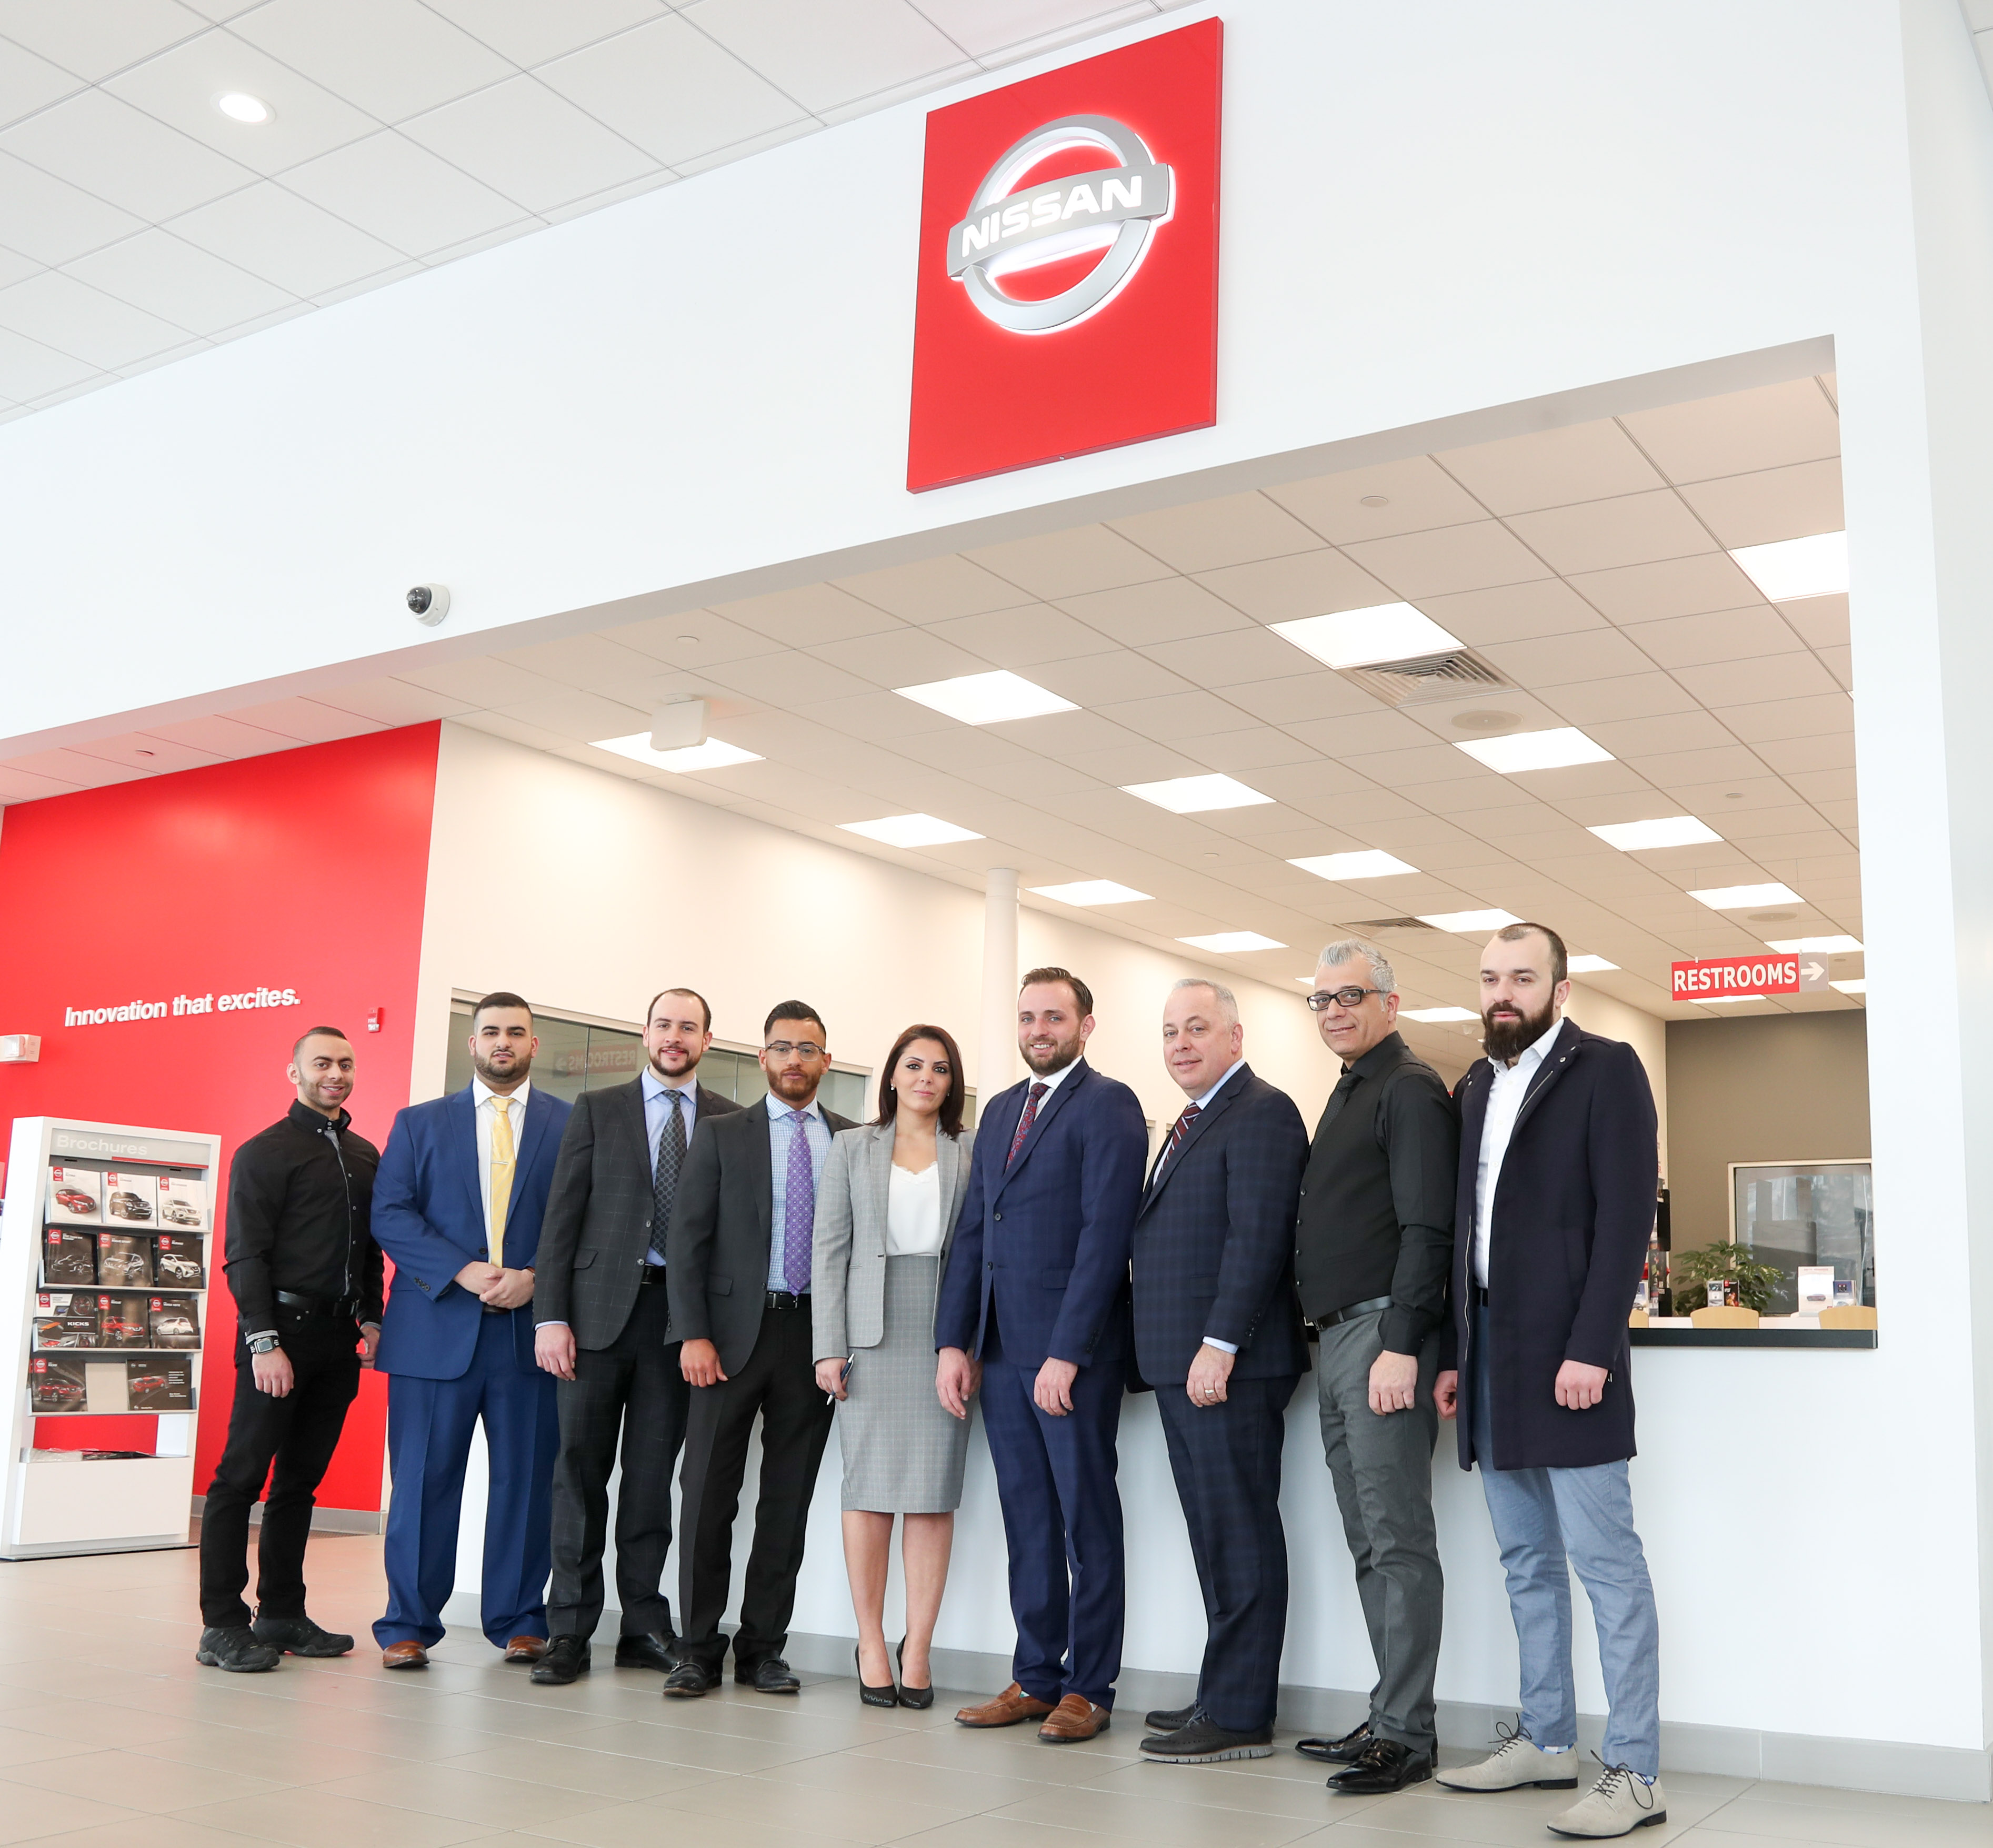 Alan Jay Nissan >> Nissan of Dearborn working to build strong community